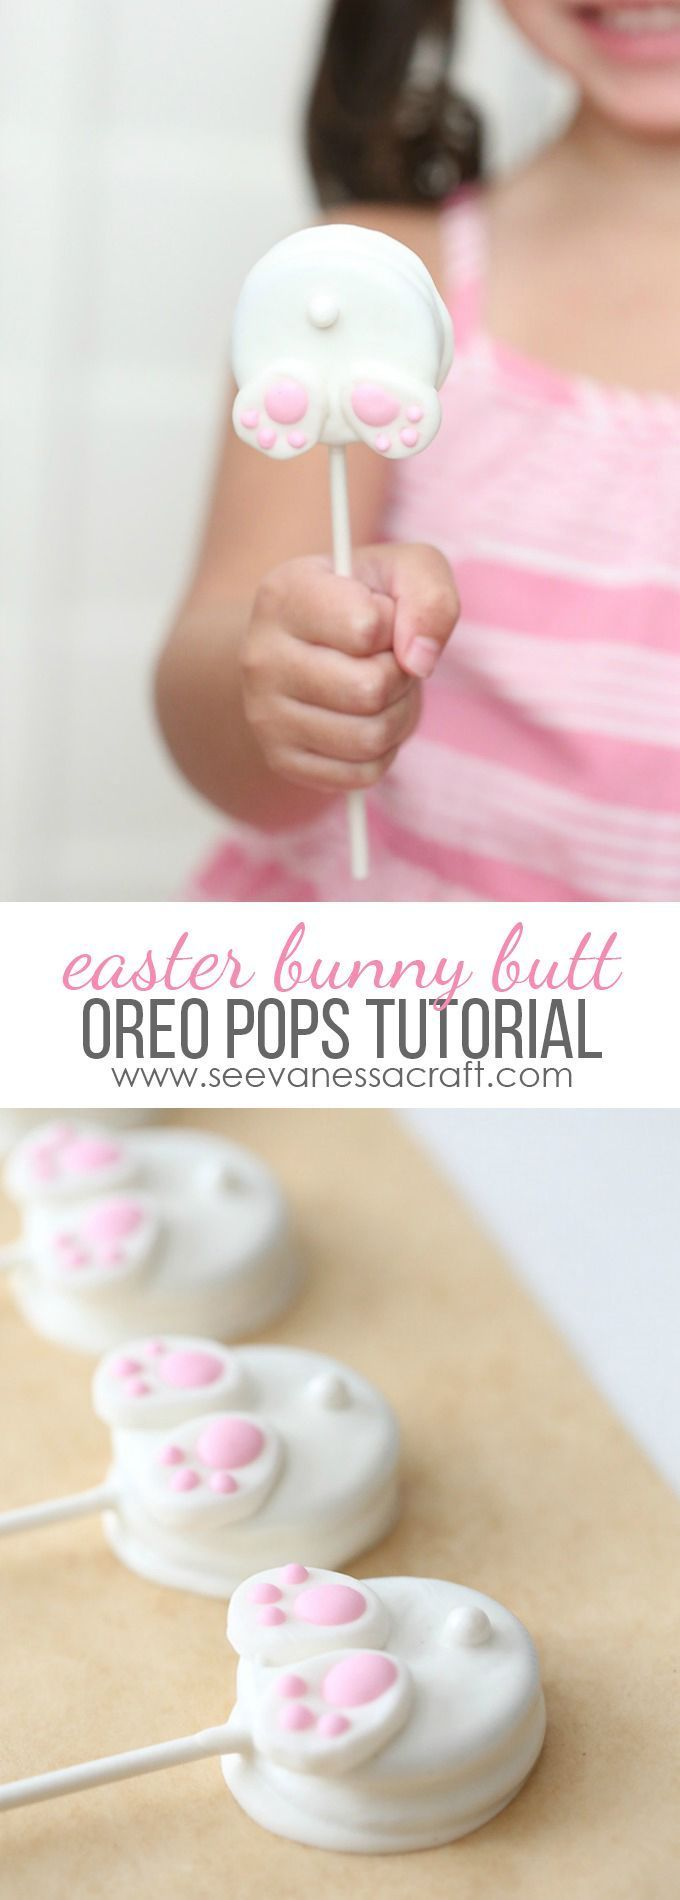 Easter Bunny Butt Oreo Pops Tutorial - perfect for an Easter party, spring classroom party or just a fun treat!